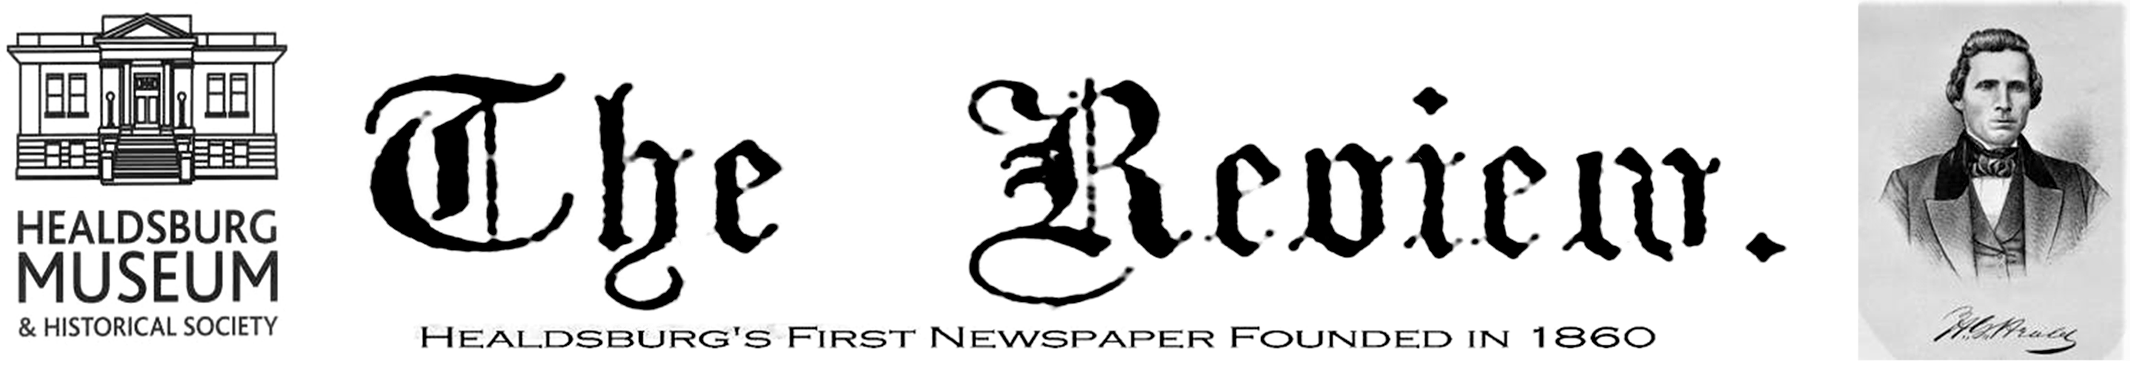 Review Masthead.PNG